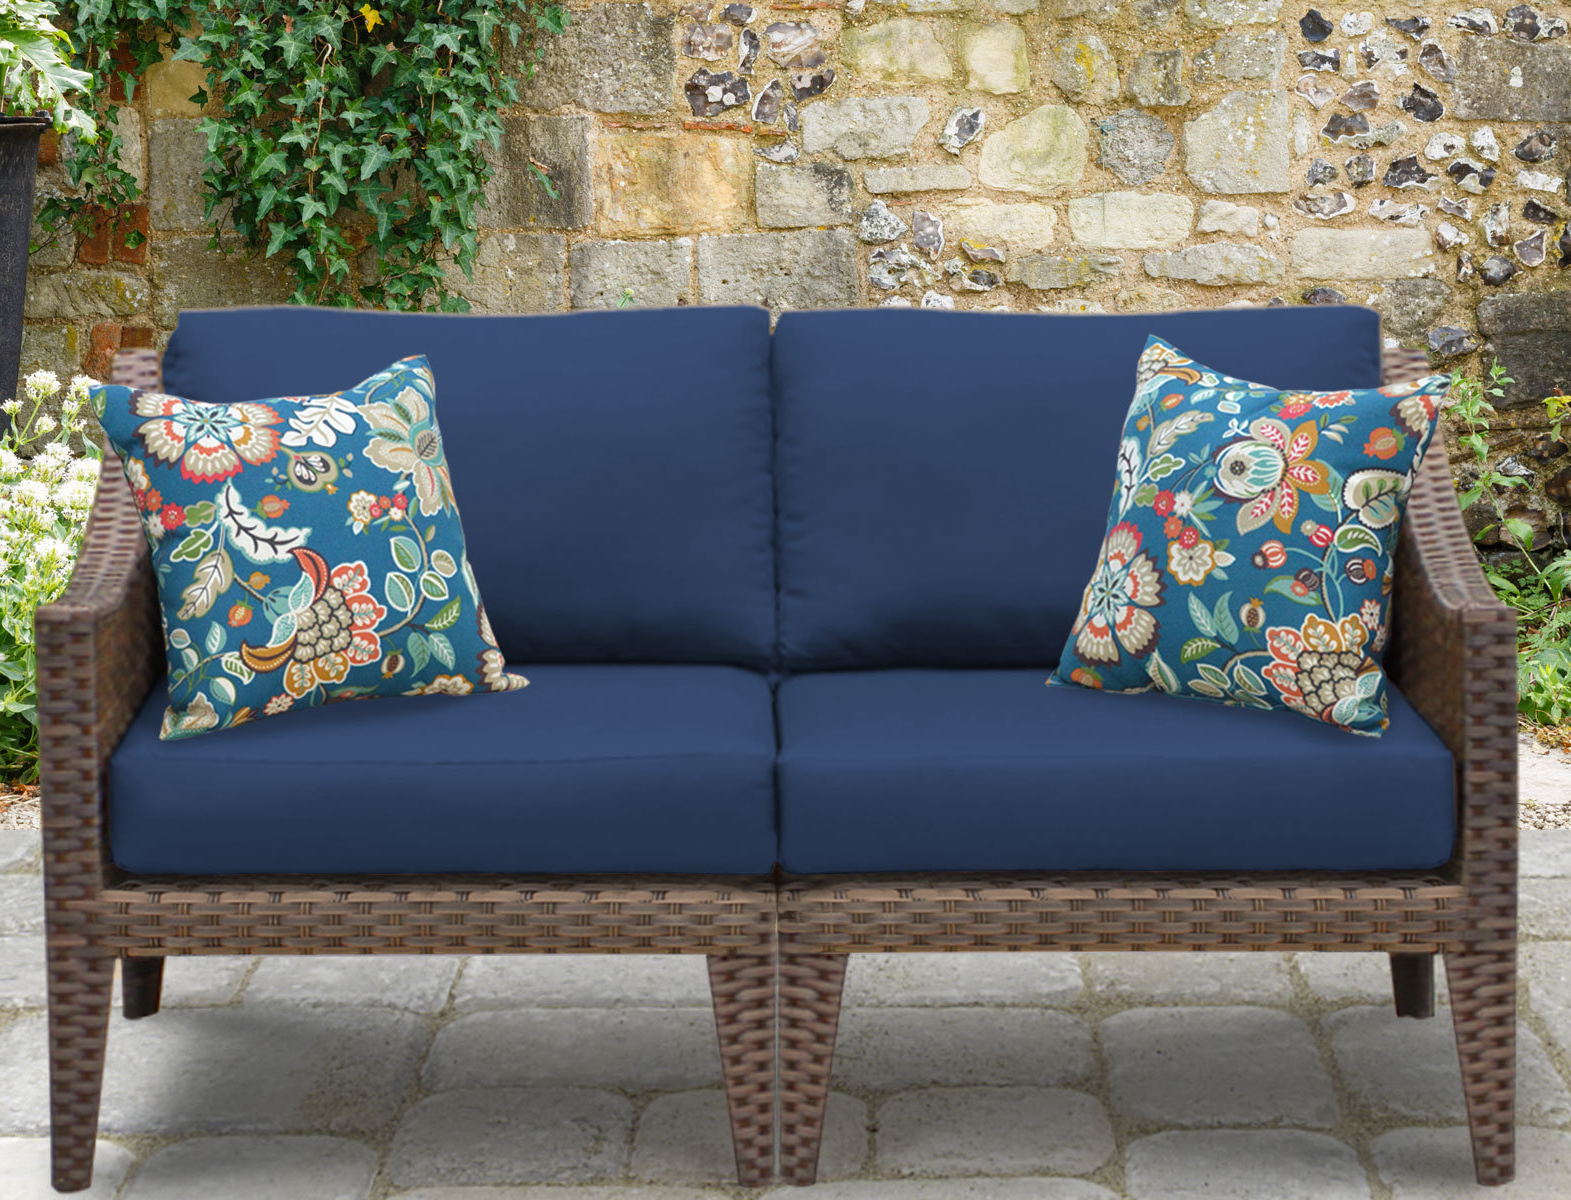 Outdoor Curved Loveseat (View 4 of 20)